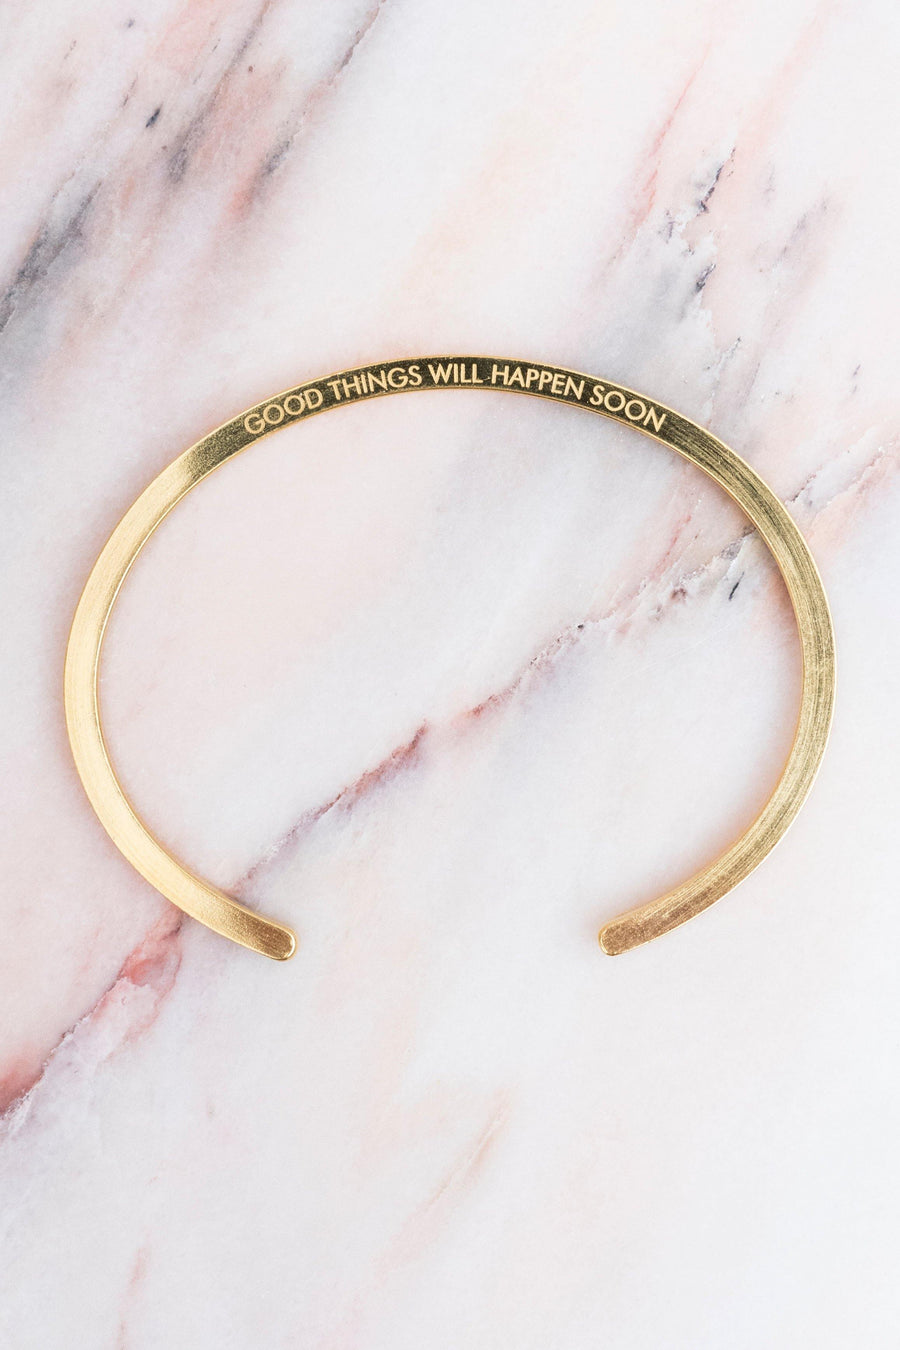 Kiki Dieterle x The Good Store Bracelet gold plated